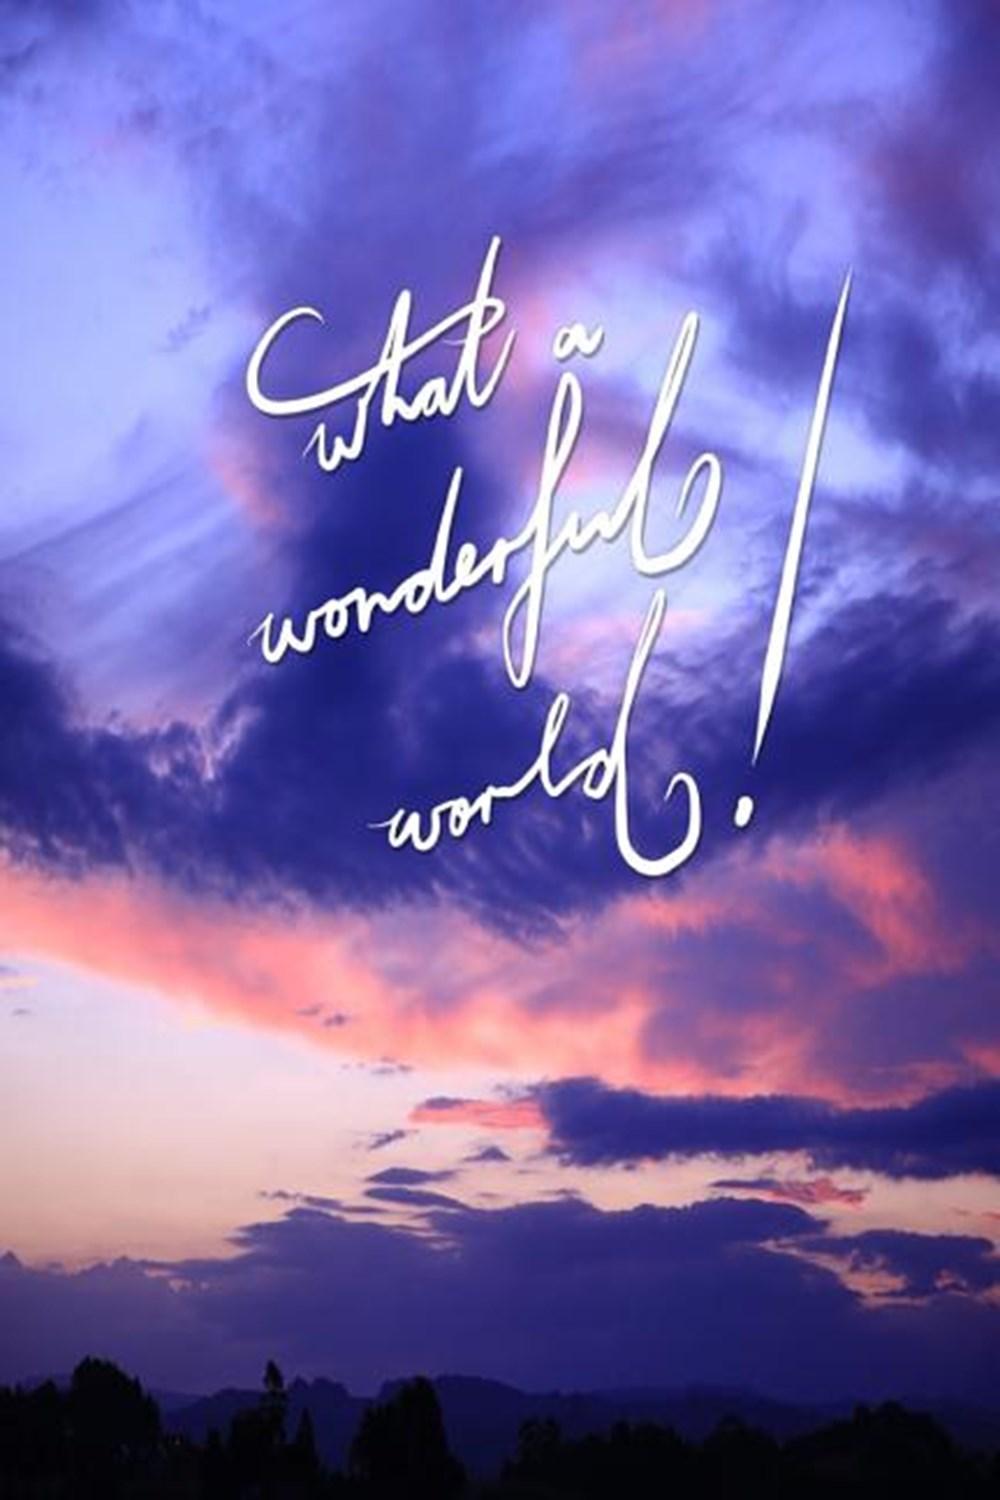 What a Wonderful World 6x9 Inch Lined a Journal Designed to Remind You That It Really Is a Wonderful